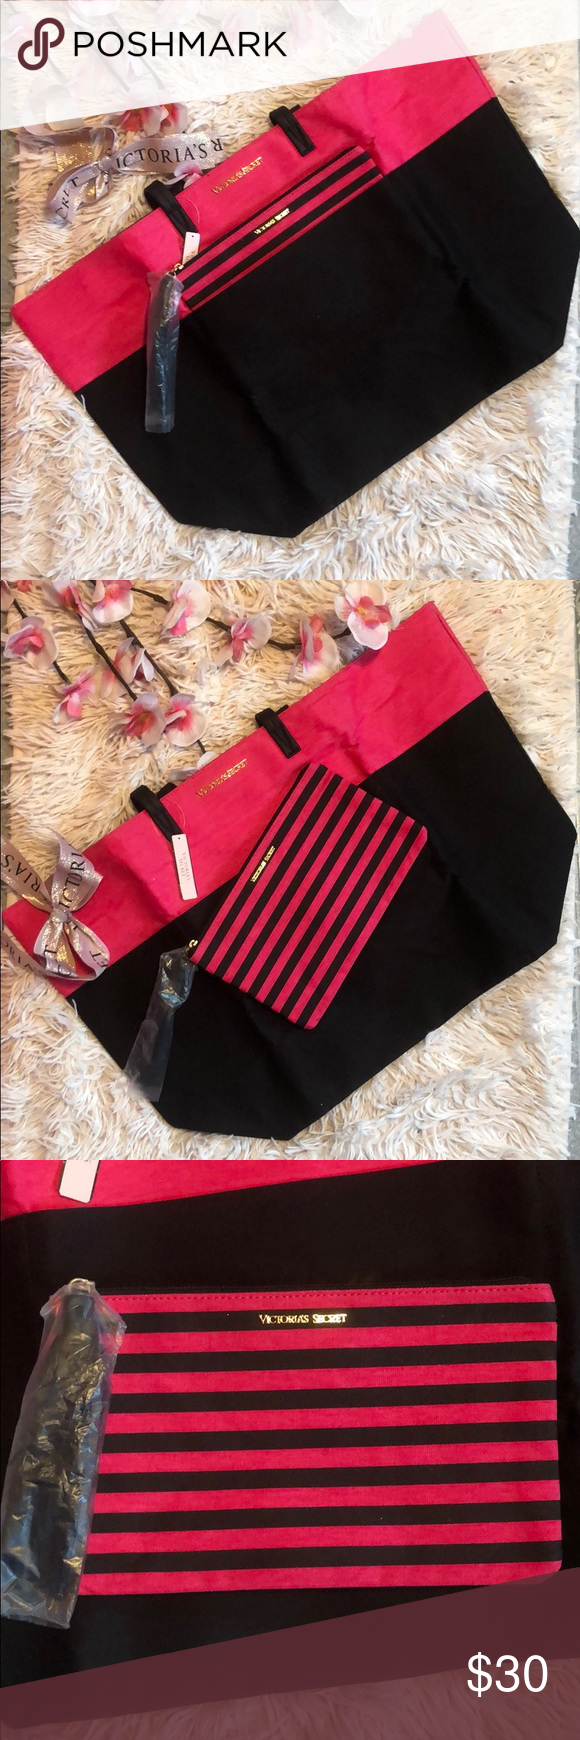 1822014d94 VIctoria Secret s Tote w  cosmetic bag set NWT Victoria Secret s Tote Set  Large tote w  cosmetic bag with tassel. Hot pink with black. 2 straps.